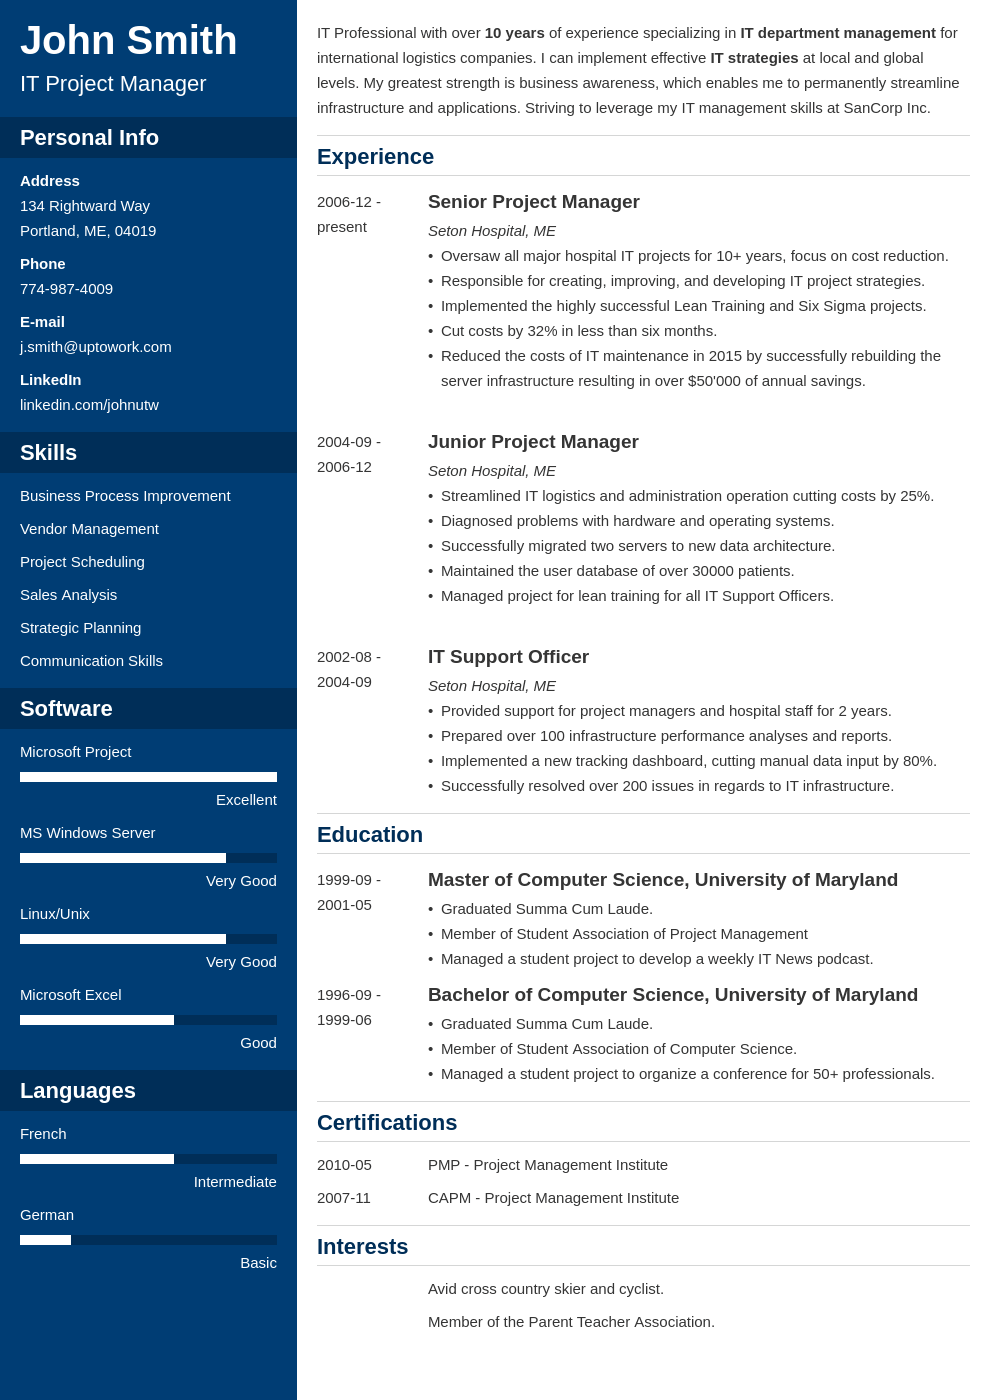 Free Resume Template Builder | 20 Resume Templates Download Create Your Resume In 5 Minutes